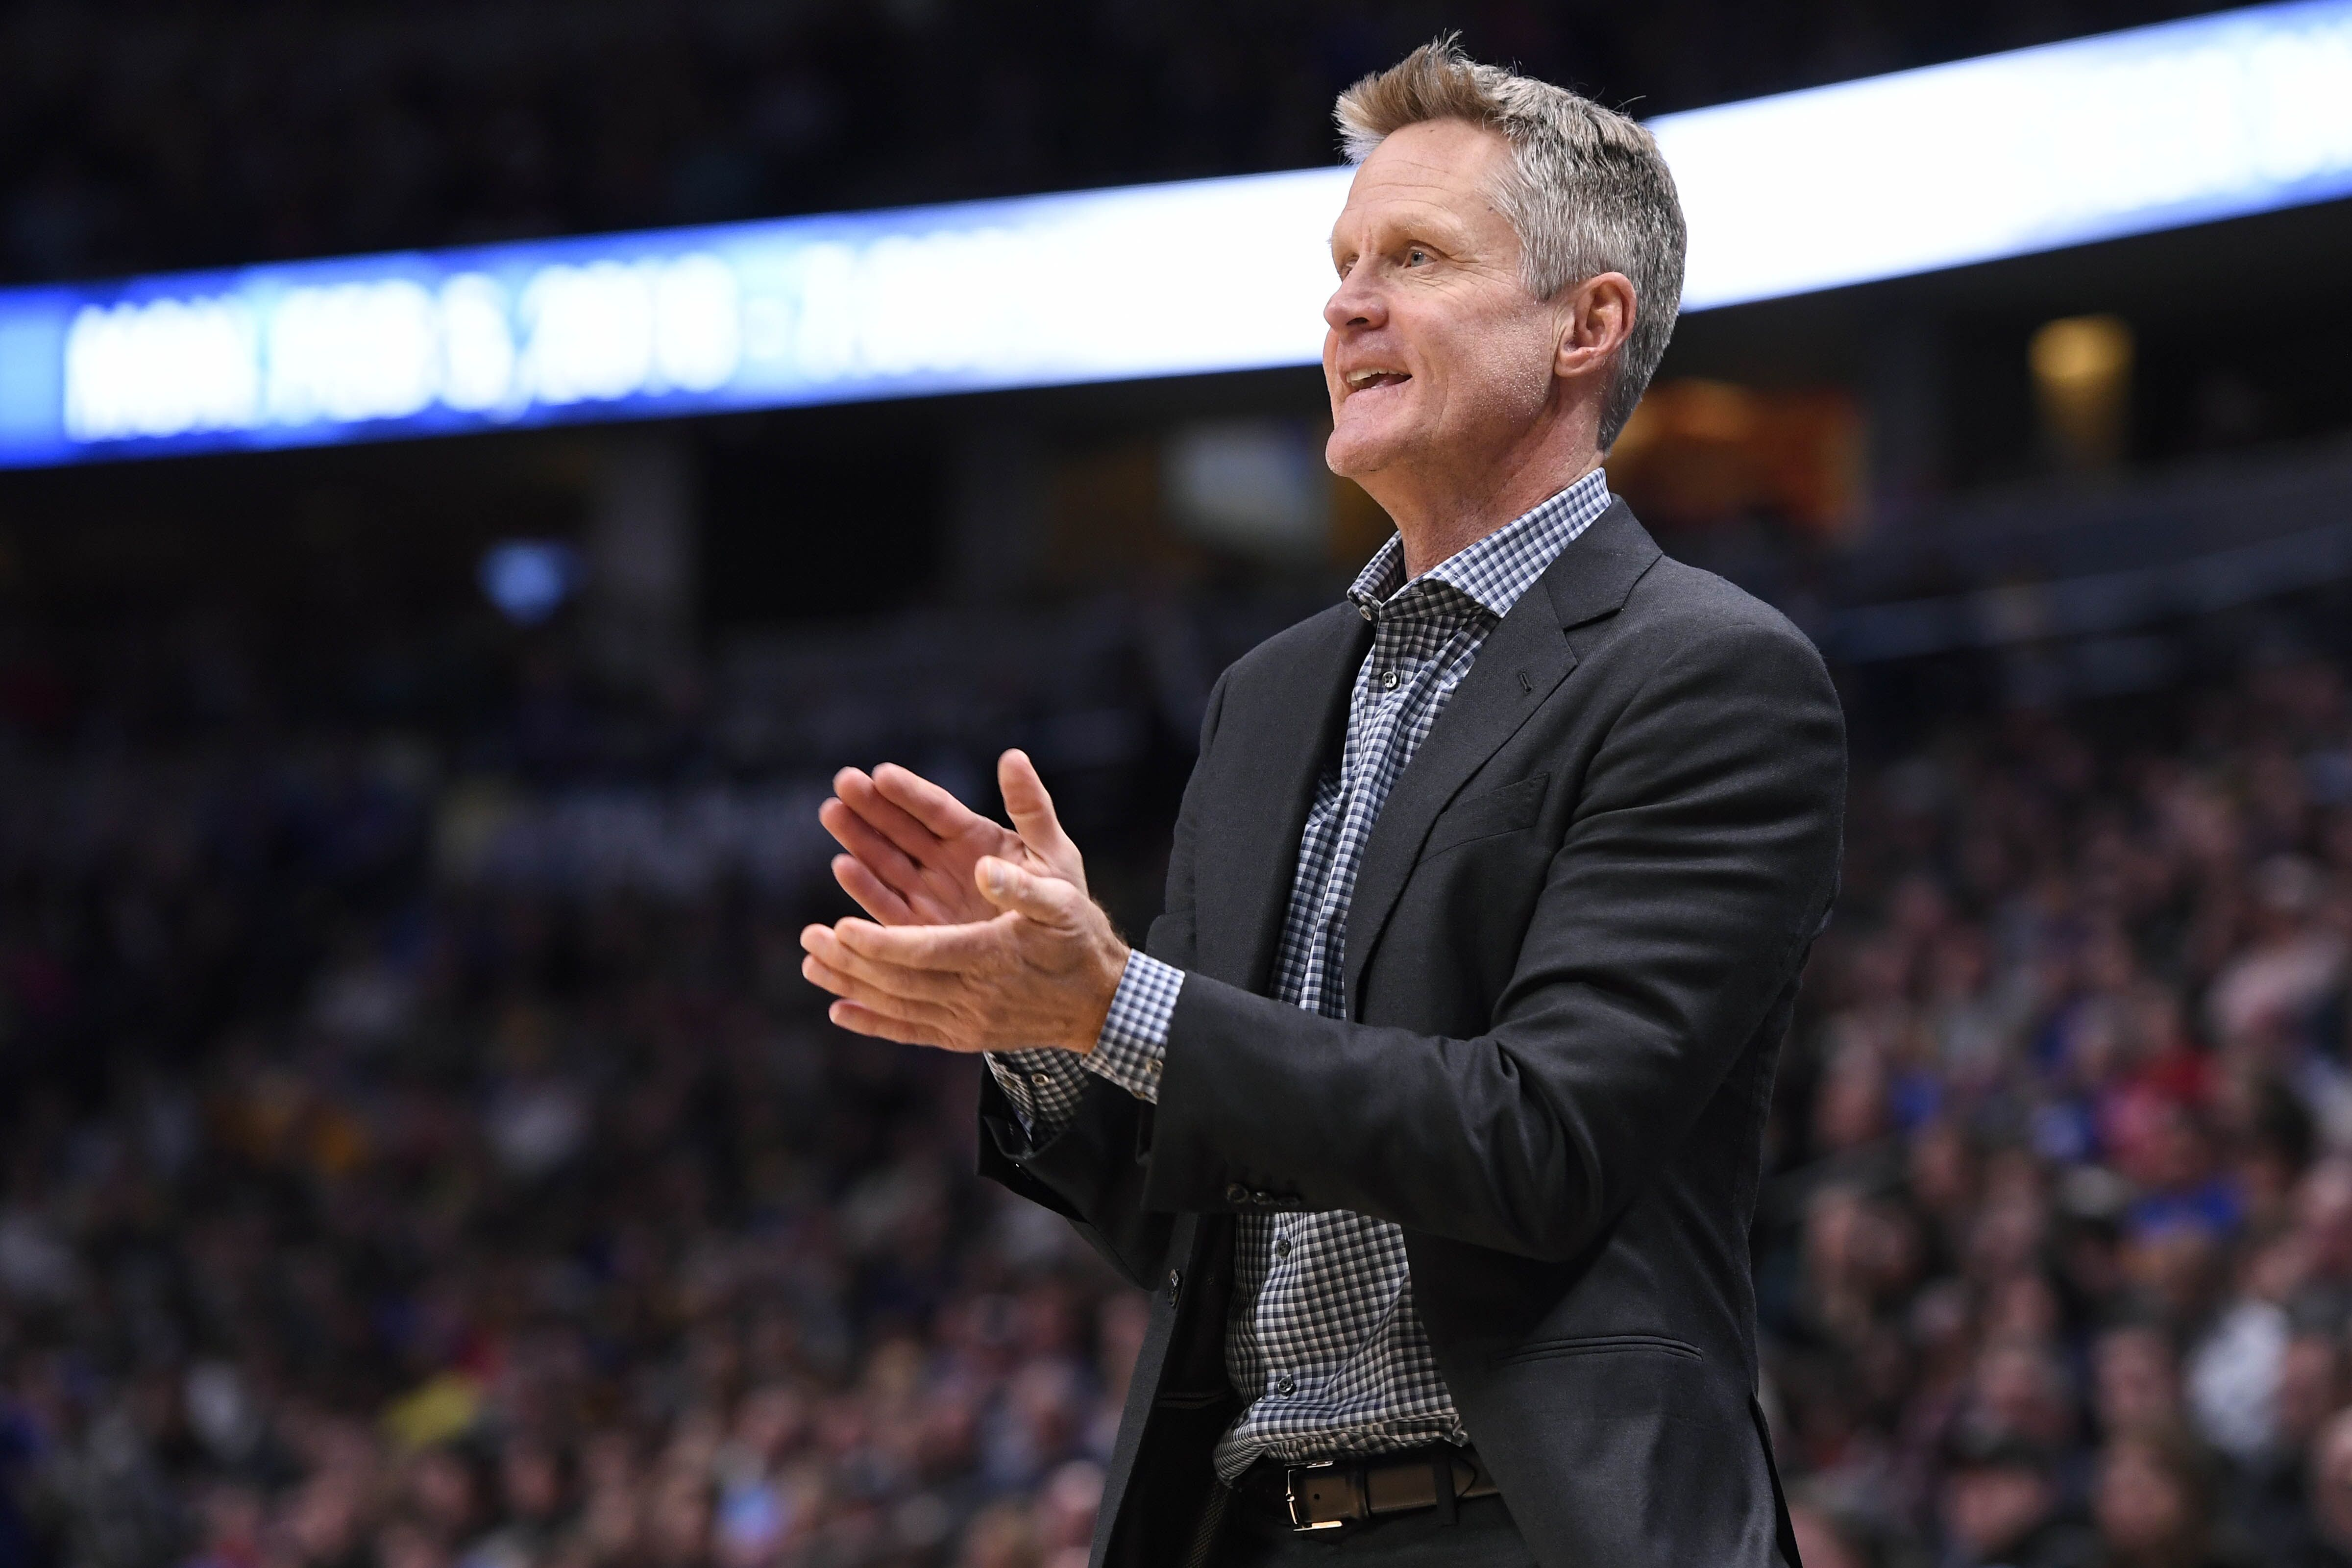 DENVER, CO - FEBRUARY 03: Head Coach Steve Kerr of the Golden State Warriors coaches against the Denver Nuggets at Pepsi Center on February 3, 2018 in Denver, Colorado. NOTE TO USER: User expressly acknowledges and agrees that, by downloading and or using this photograph, User is consenting to the terms and conditions of the Getty Images License Agreement. (Photo by Jamie Schwaberow/Getty Images)